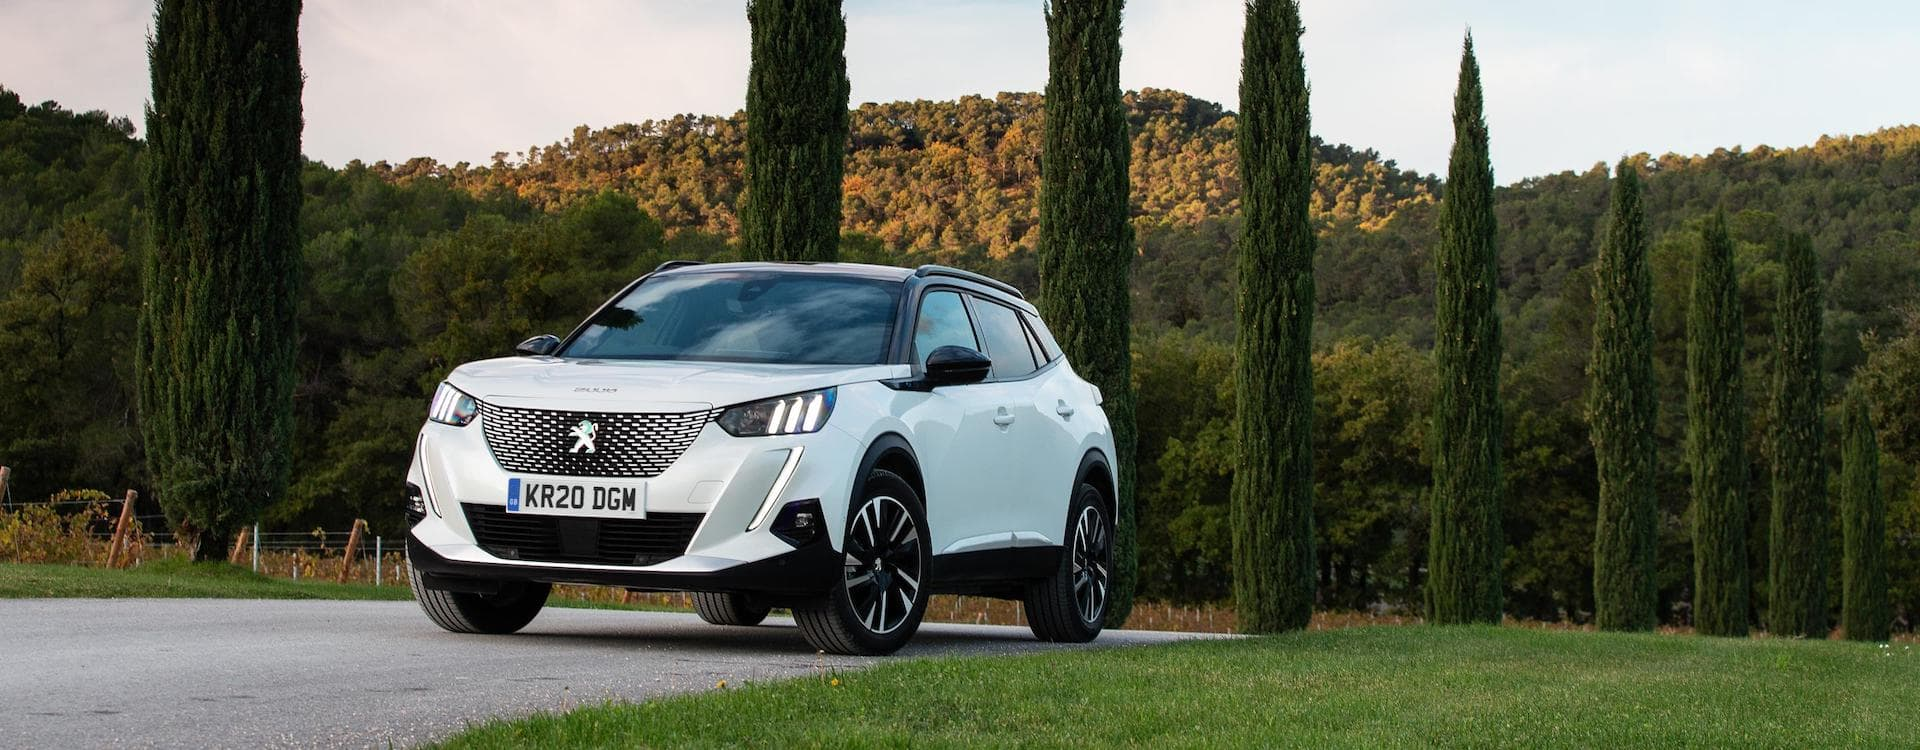 Should you choose a new Peugeot 2008 on salary sacrifice?